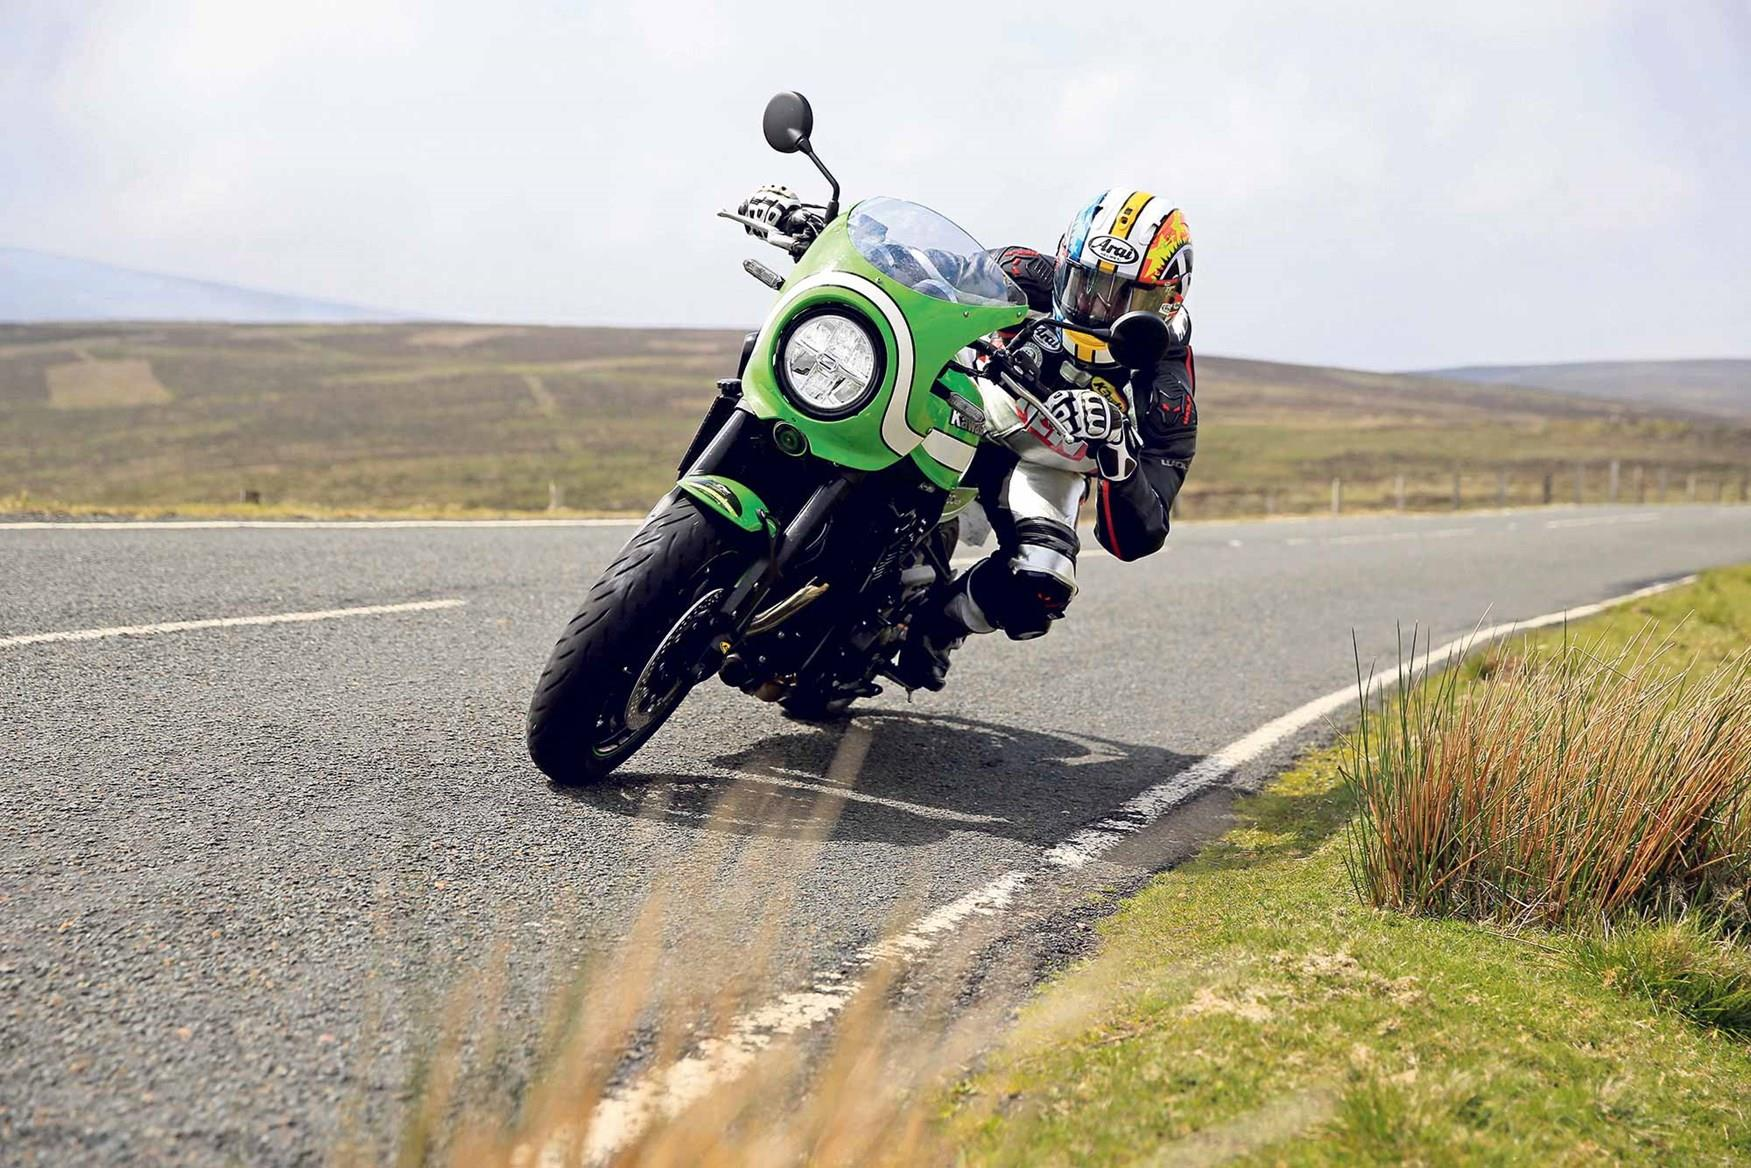 The Kawasaki Z900RS Cafe in action